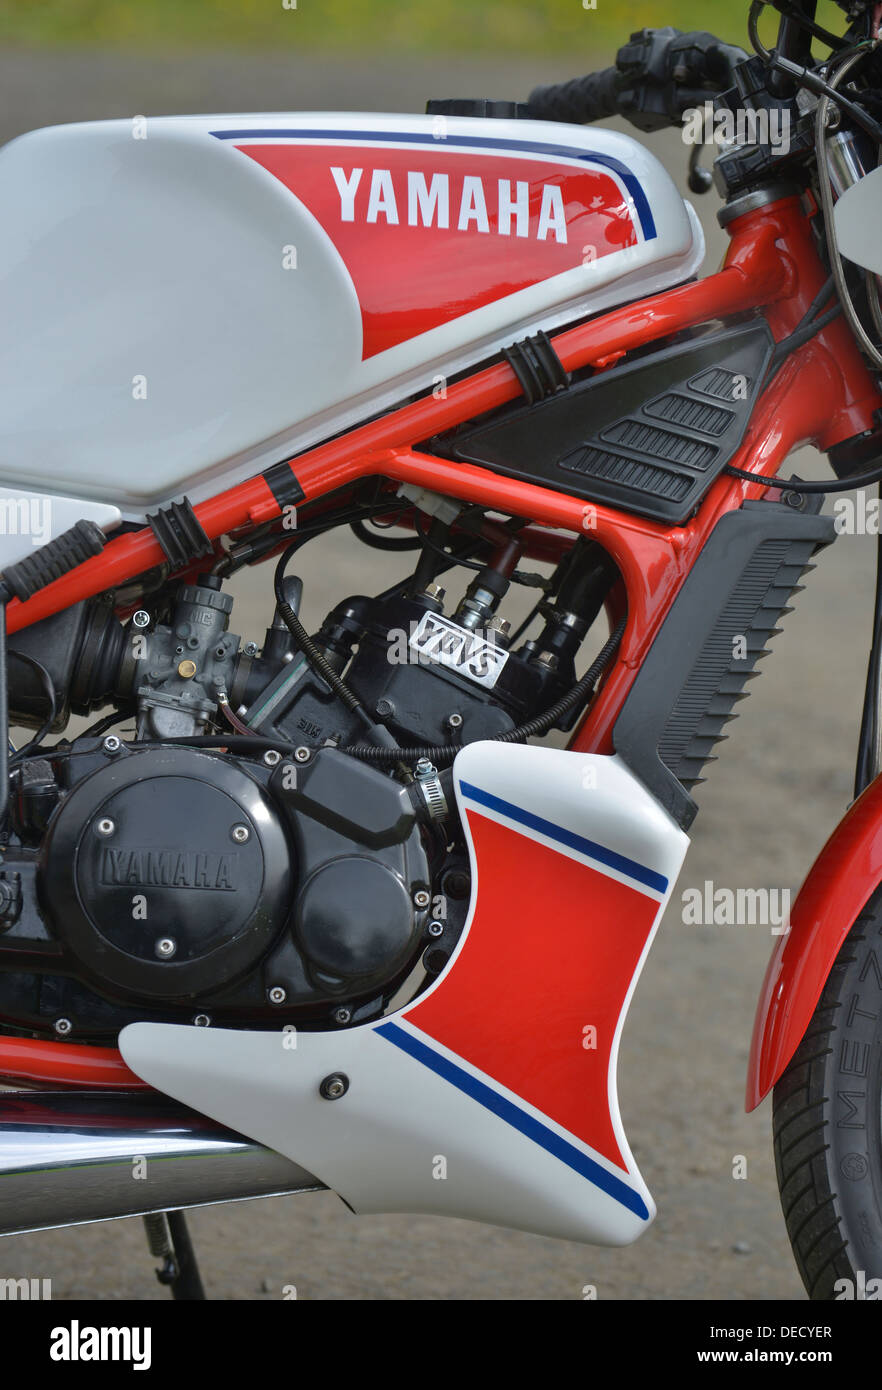 Rd350lc Engine